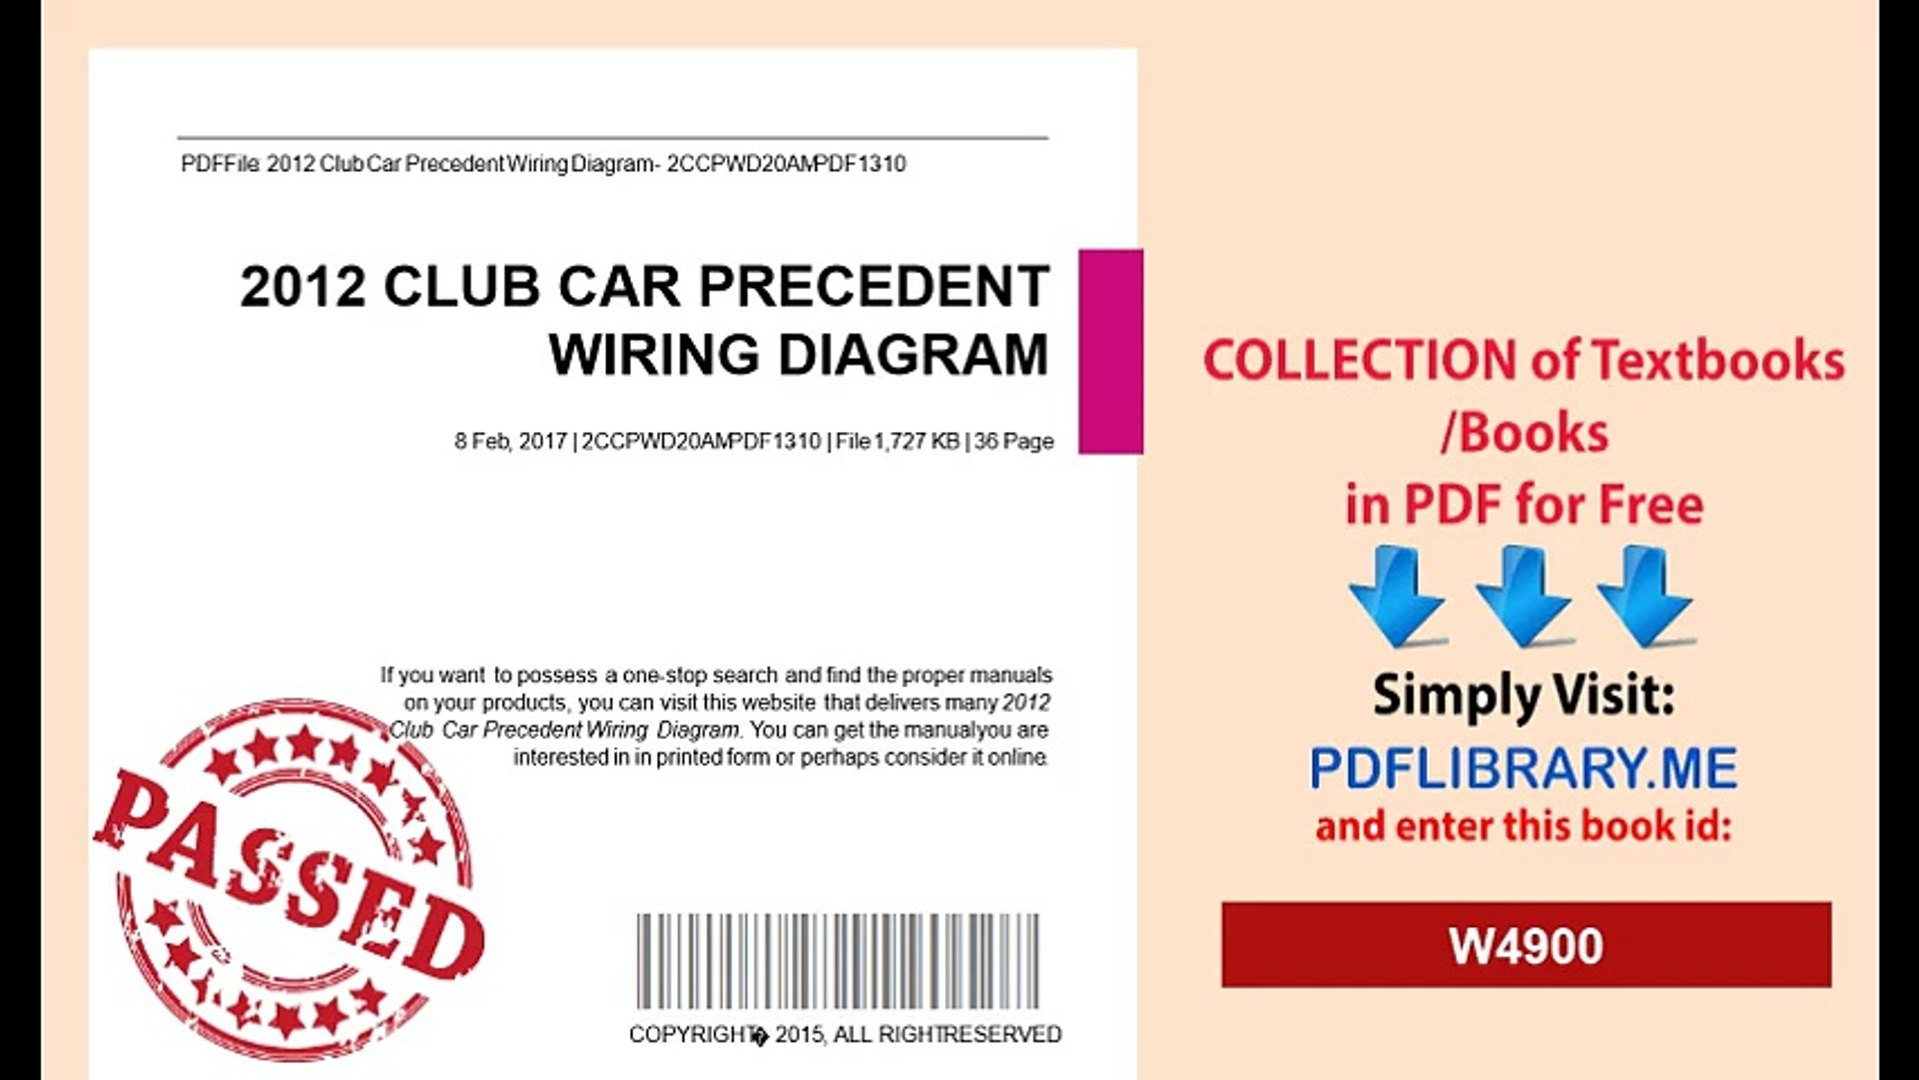 hight resolution of 2012 club car precedent wiring diagram video dailymotion mix wiring diagram for precedent 11